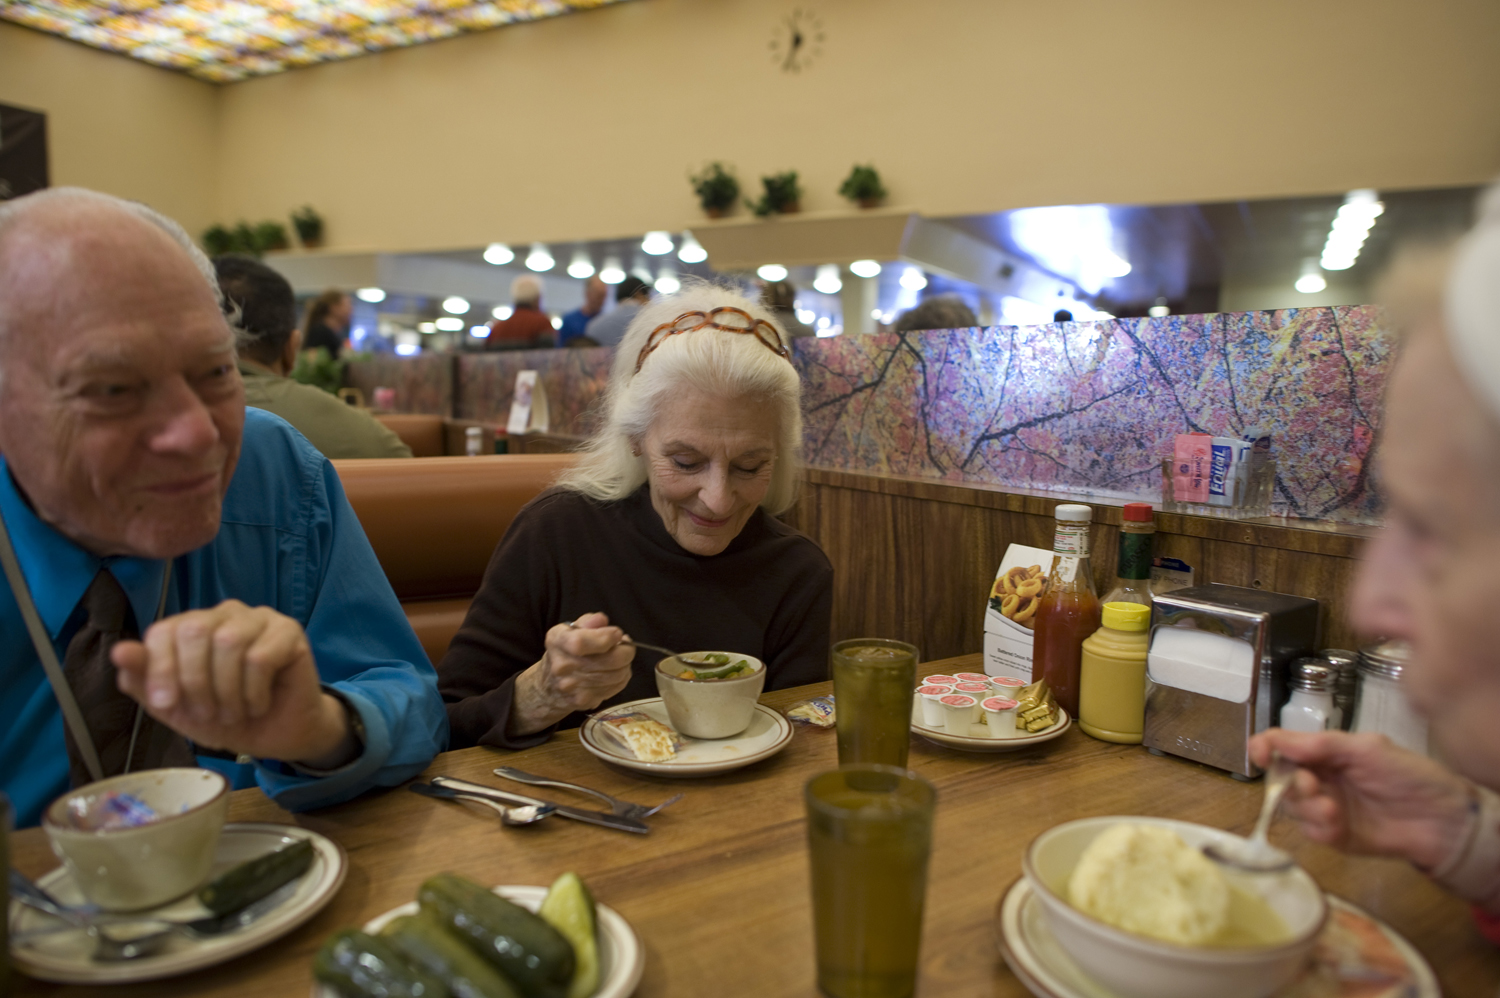 Jeanie, Will and Adina eat lunch on Christmas Day, 2011.